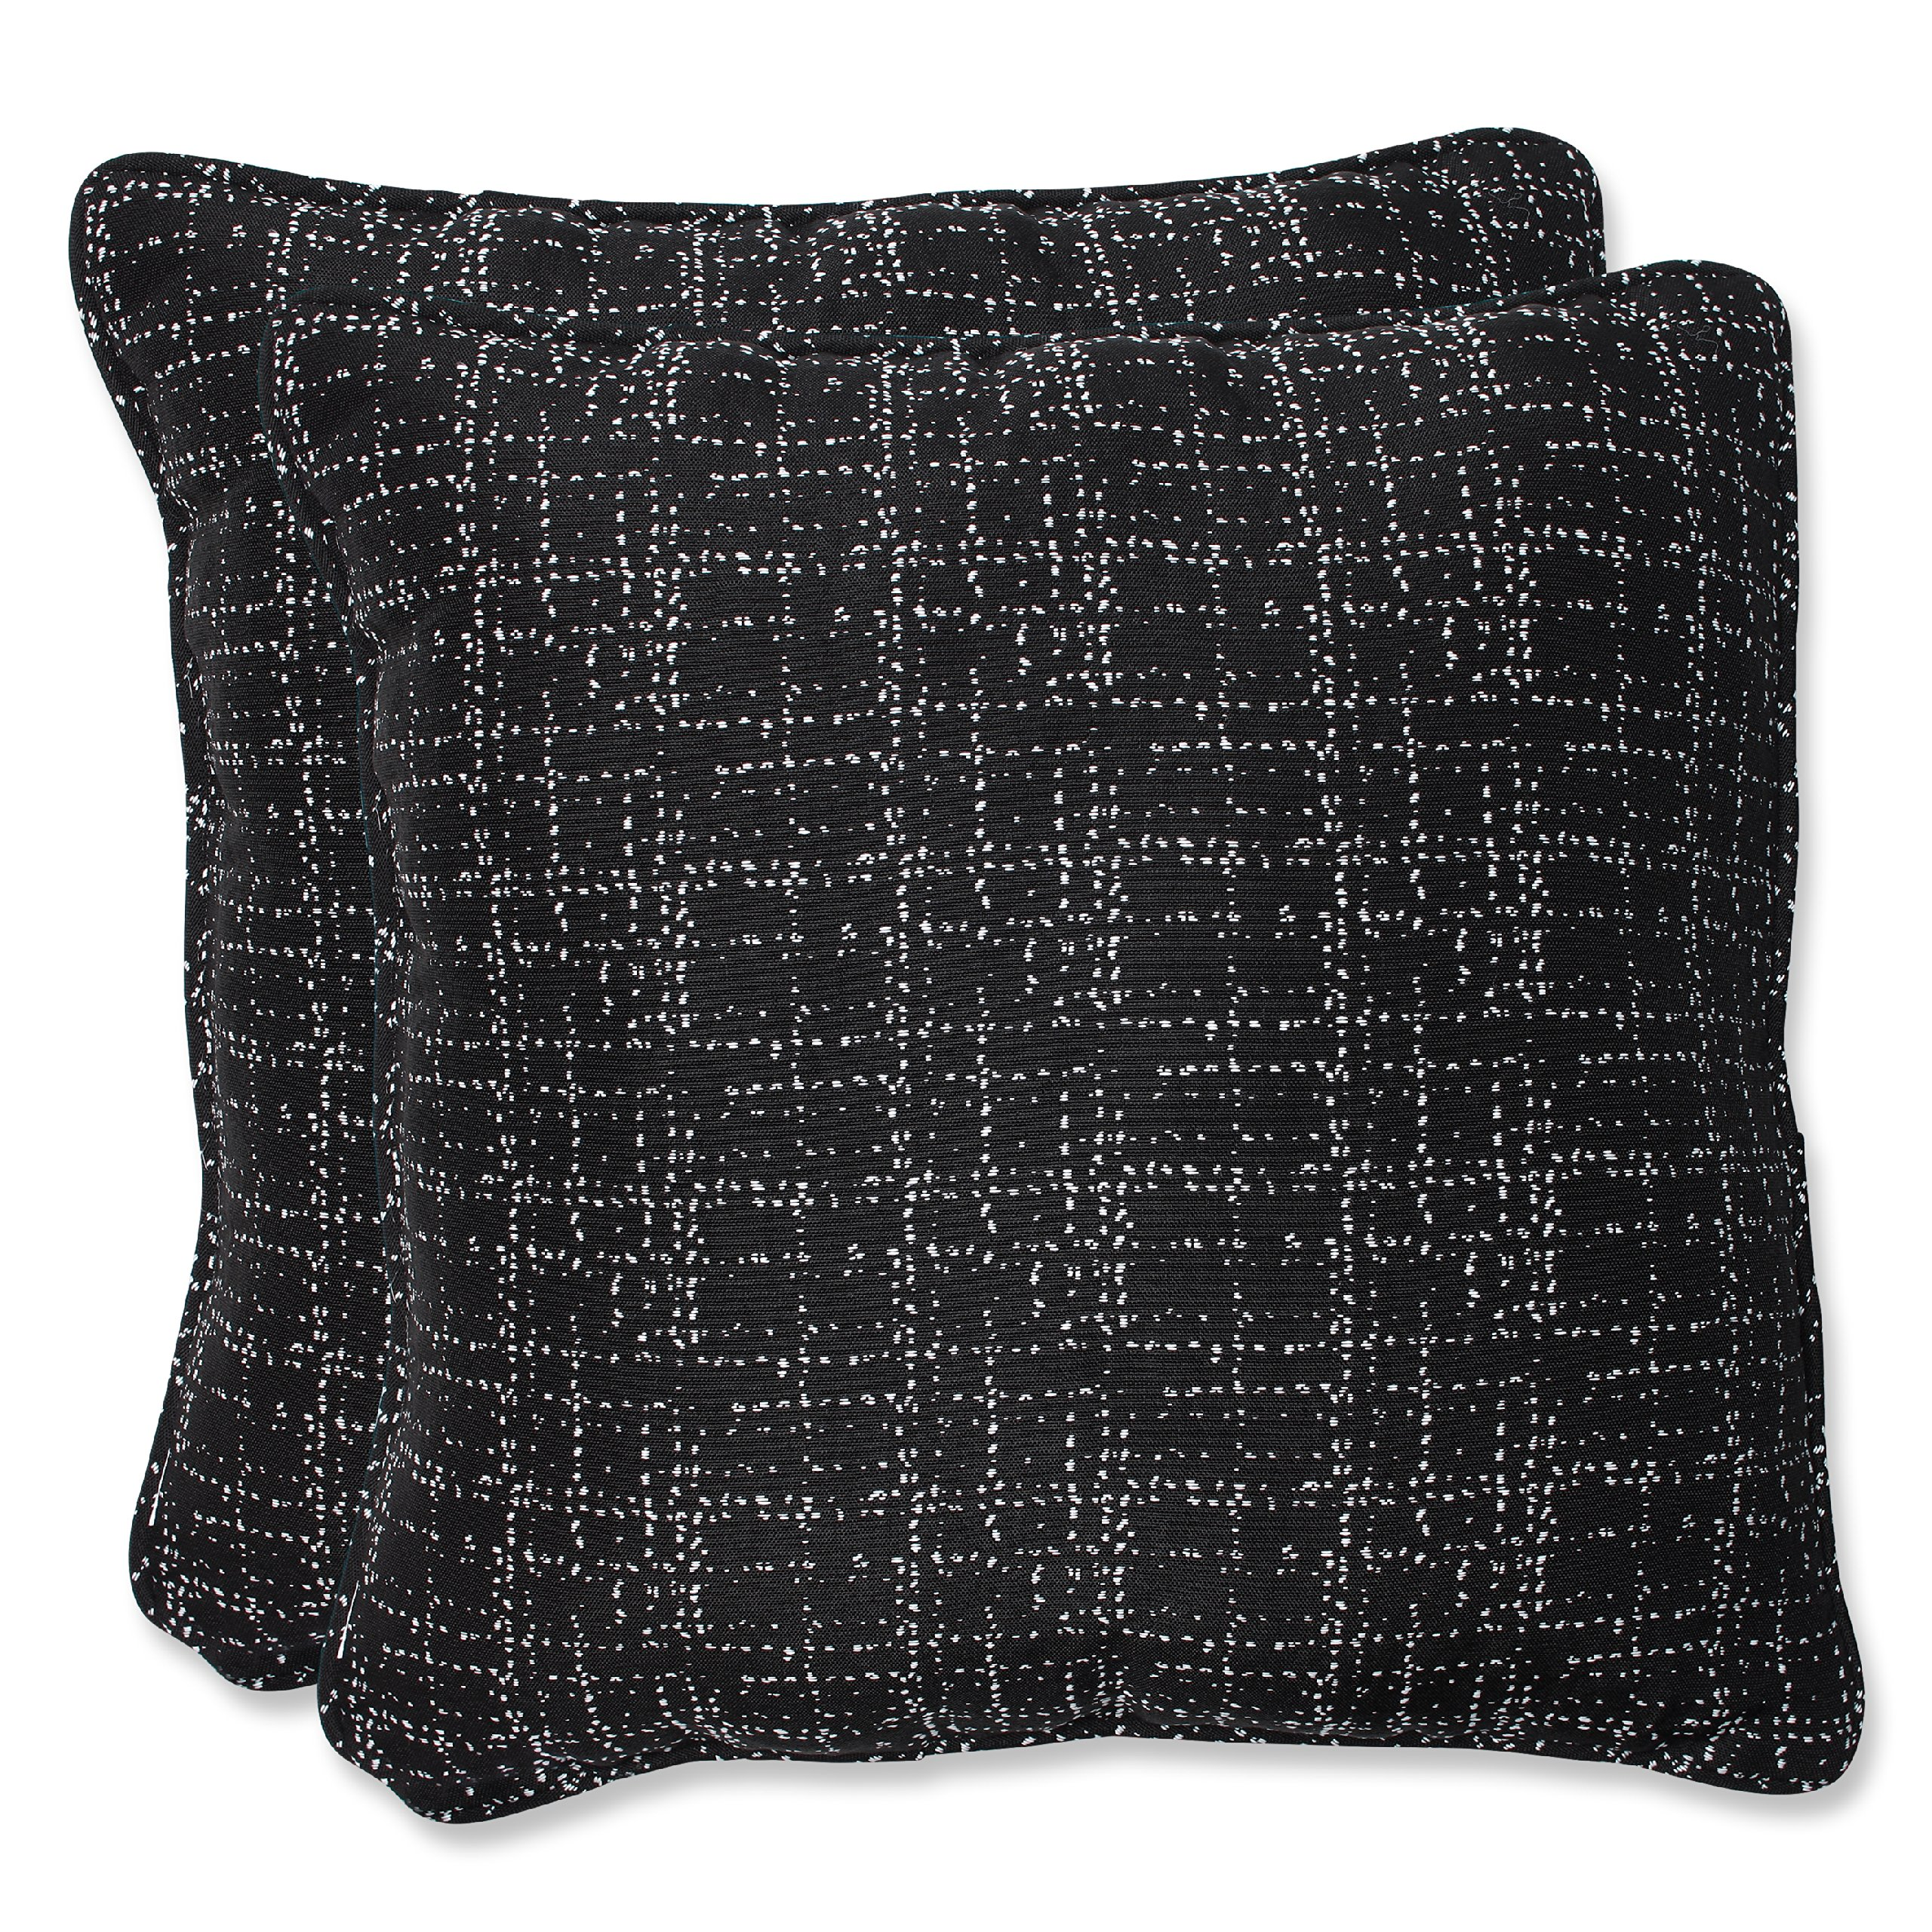 Pillow Perfect Throw Pillow with Bella-Dura Conran Black Fabric, 18.5-Inch, Set of 2